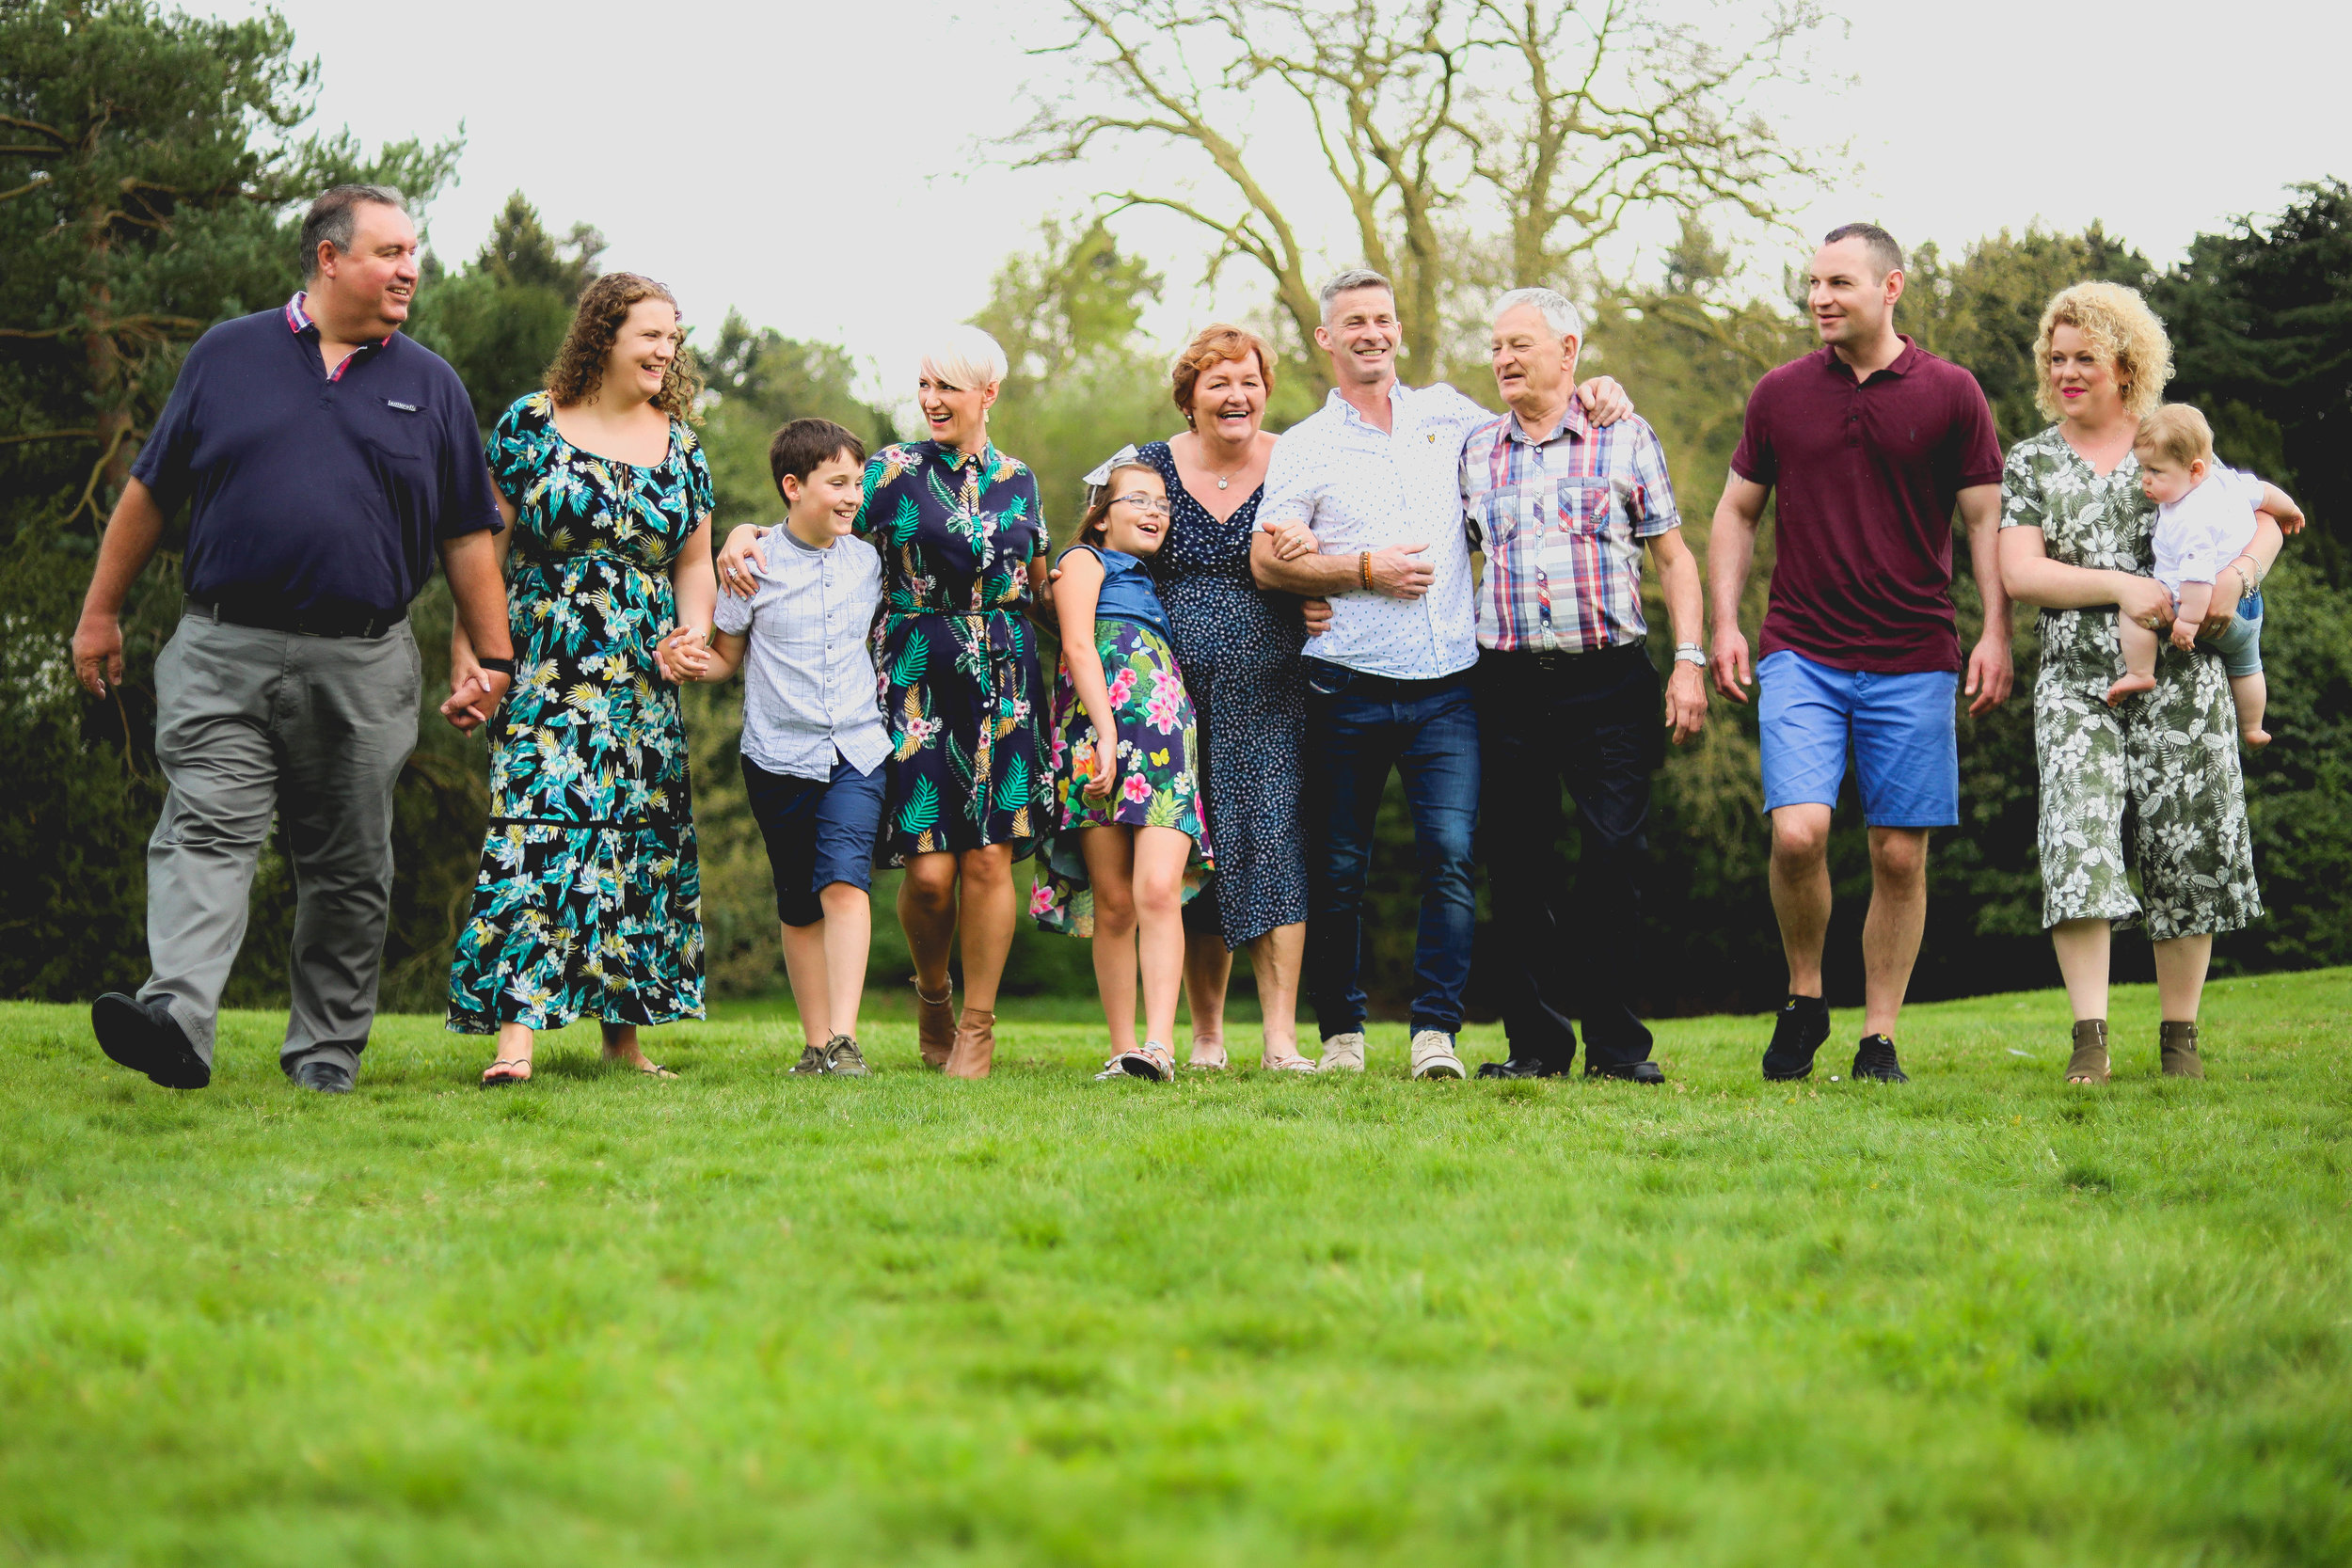 FAMILY & GROUP PHOTOGRAPHY